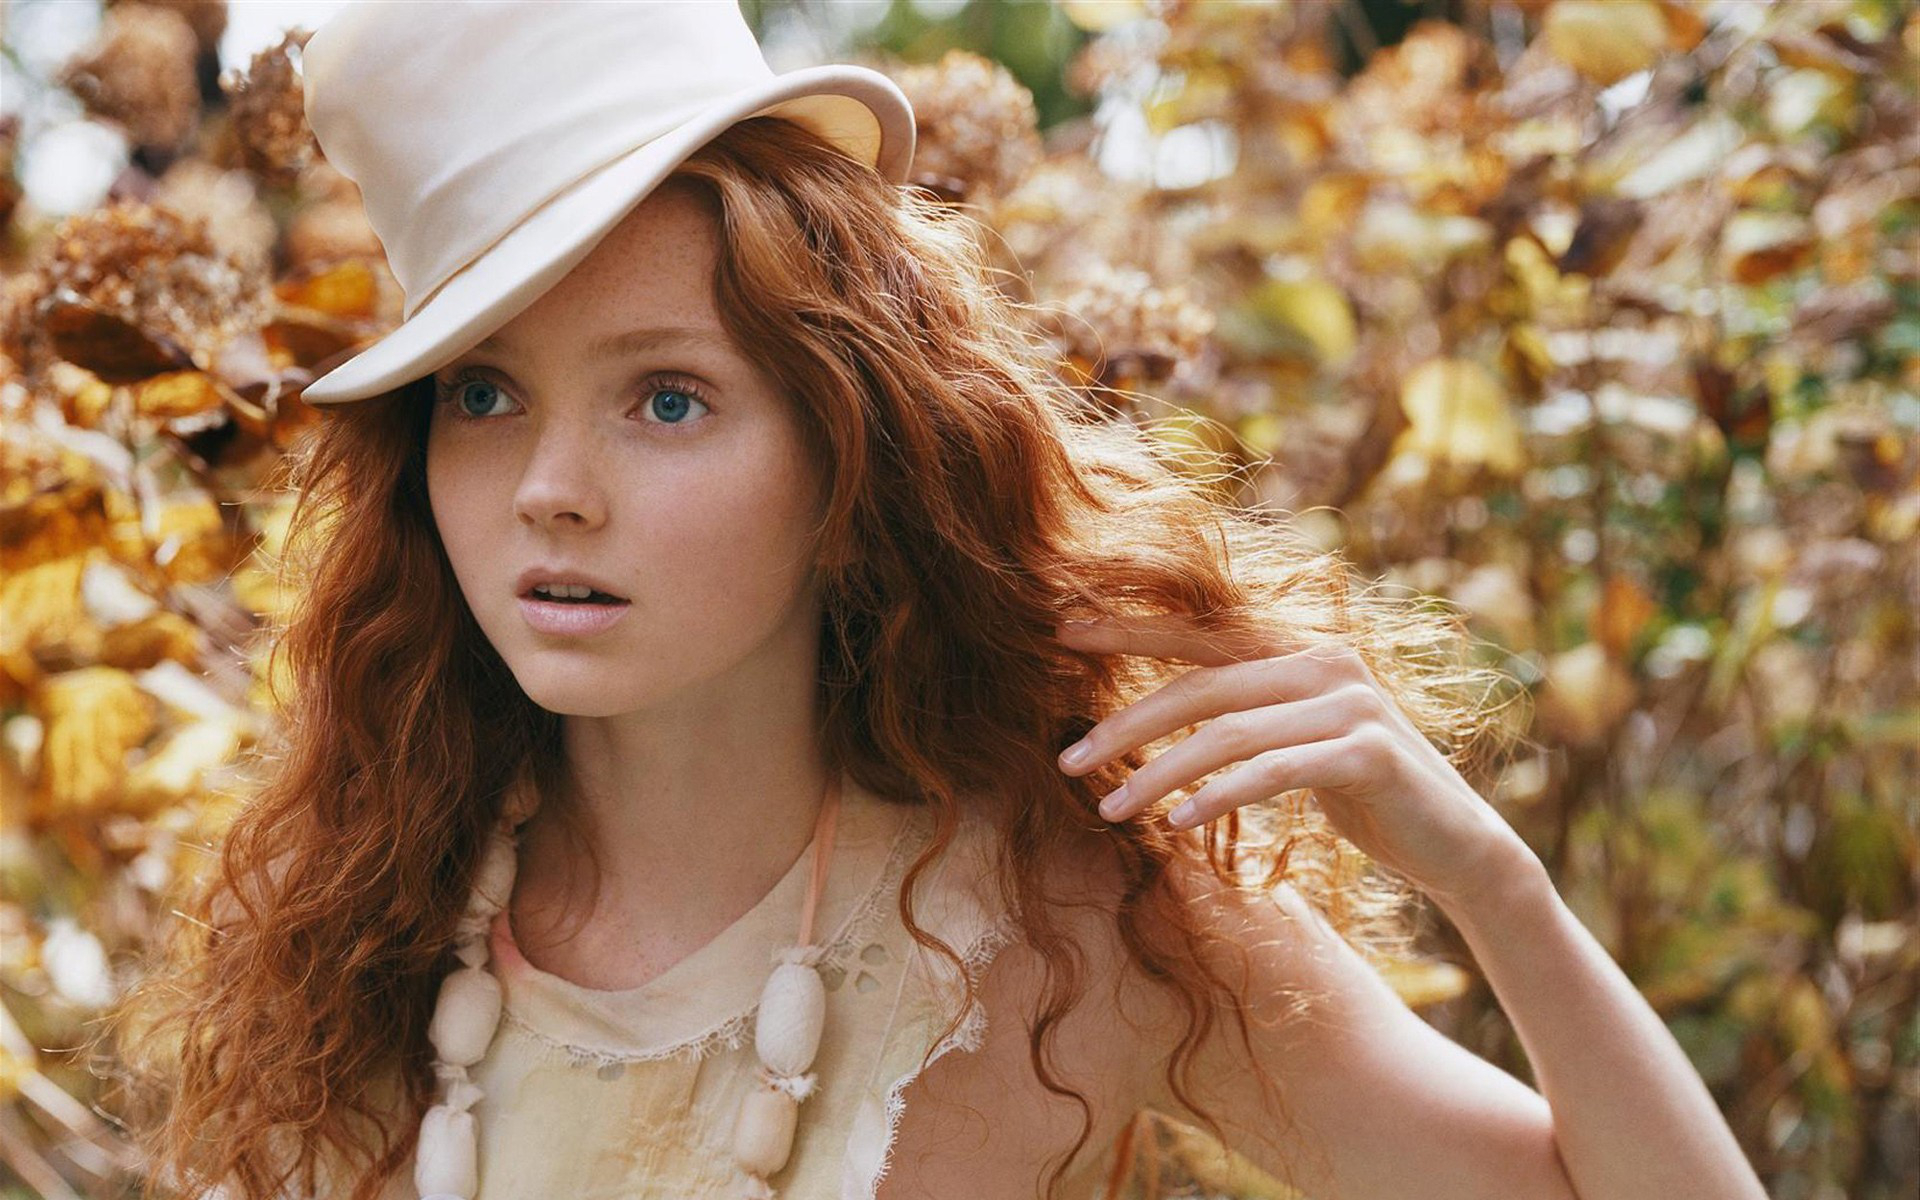 Final Fantasy Girl Hd Wallpaper Lily Cole Wallpapers Pictures Images